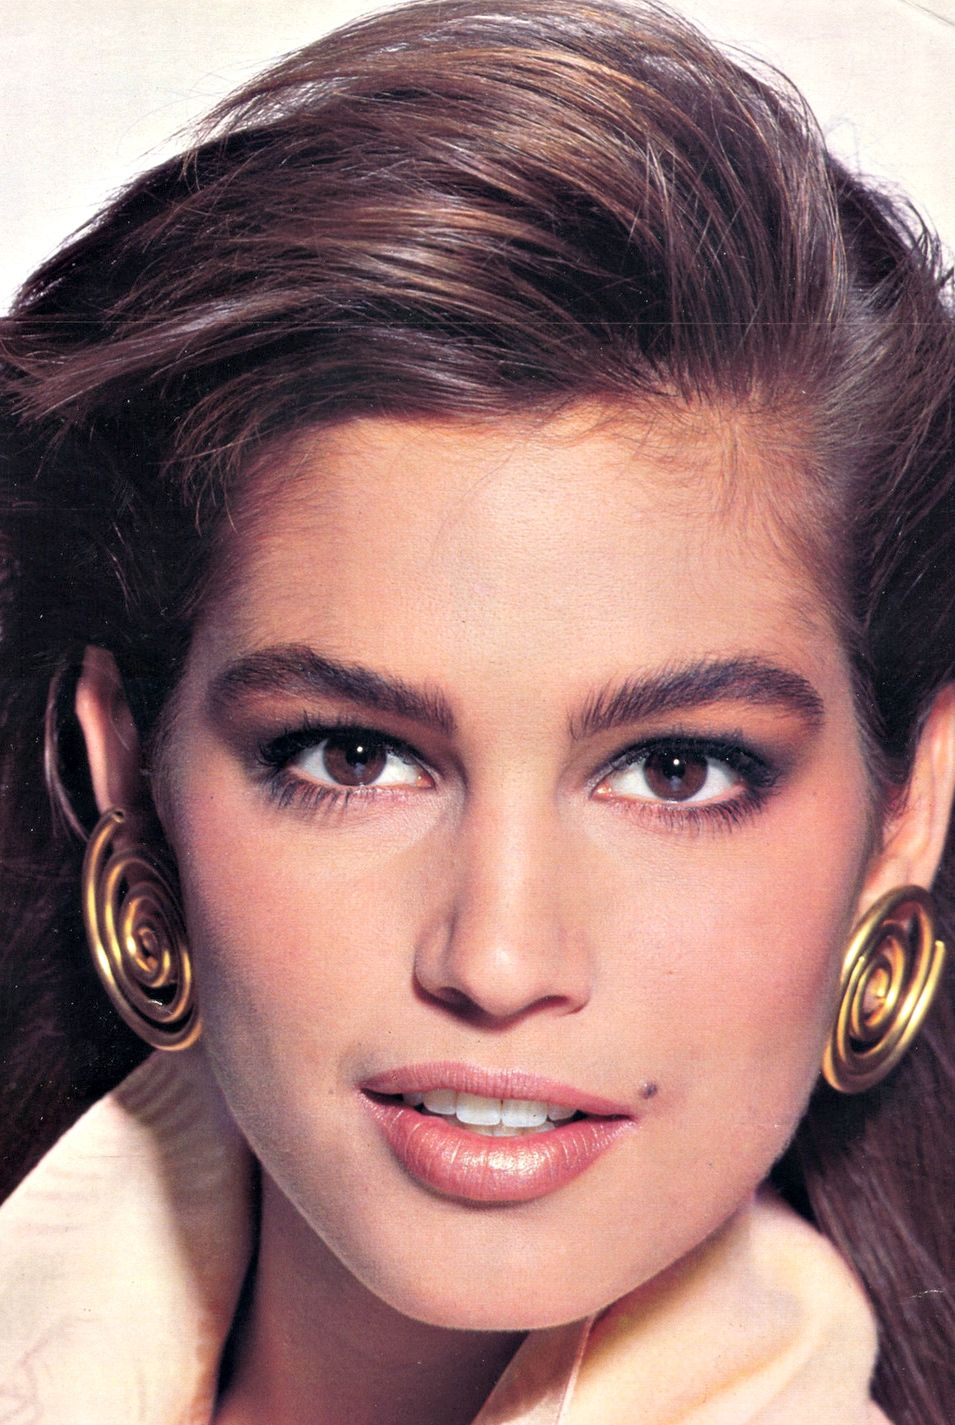 Cindy Crawford Cindy crawford, 90s makeup, Beauty icons